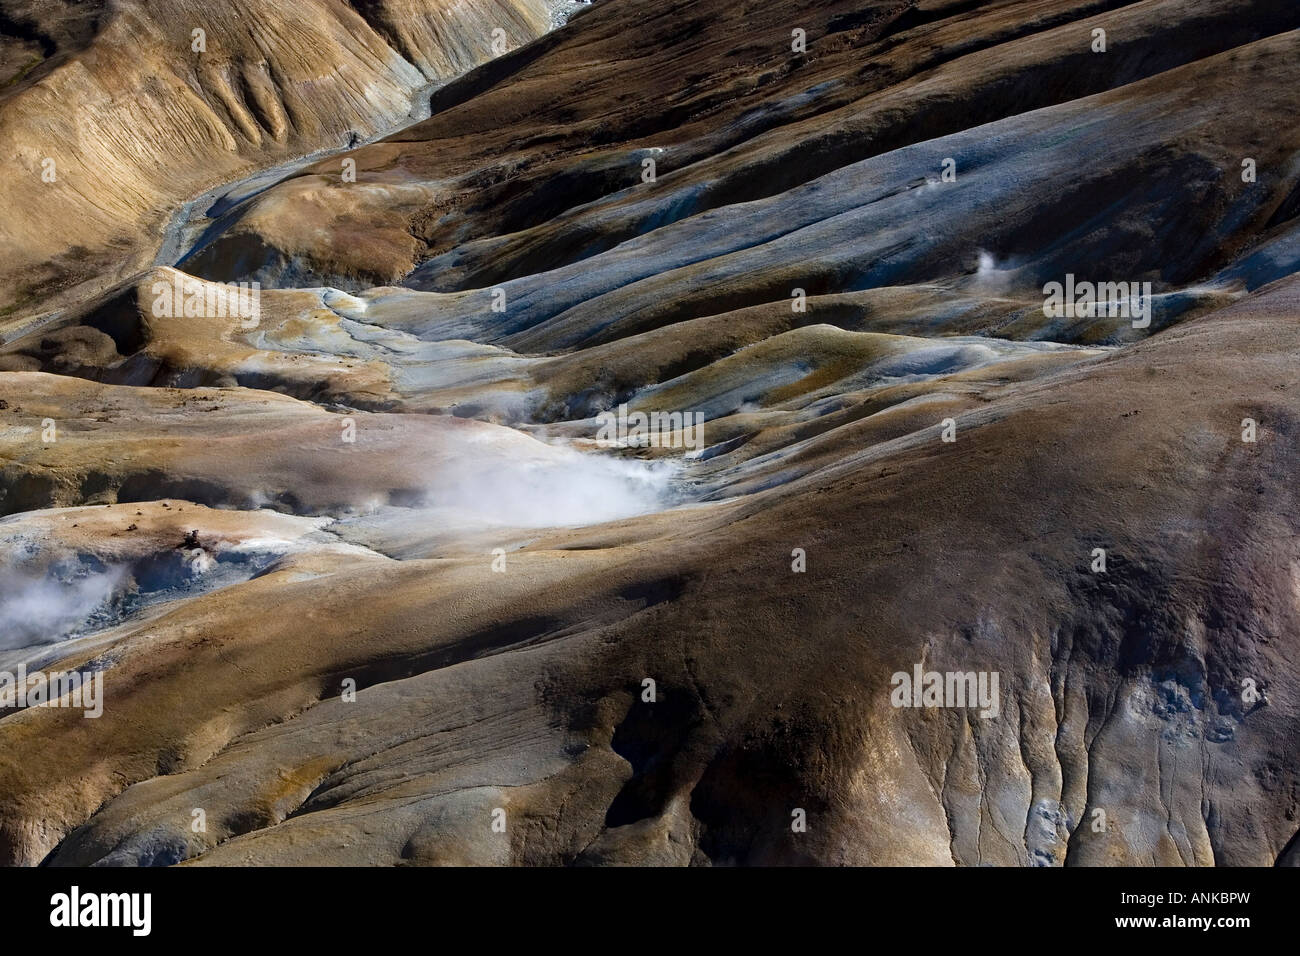 Aerial photo of geothermal areas in the mountains of Iceland - Stock Image